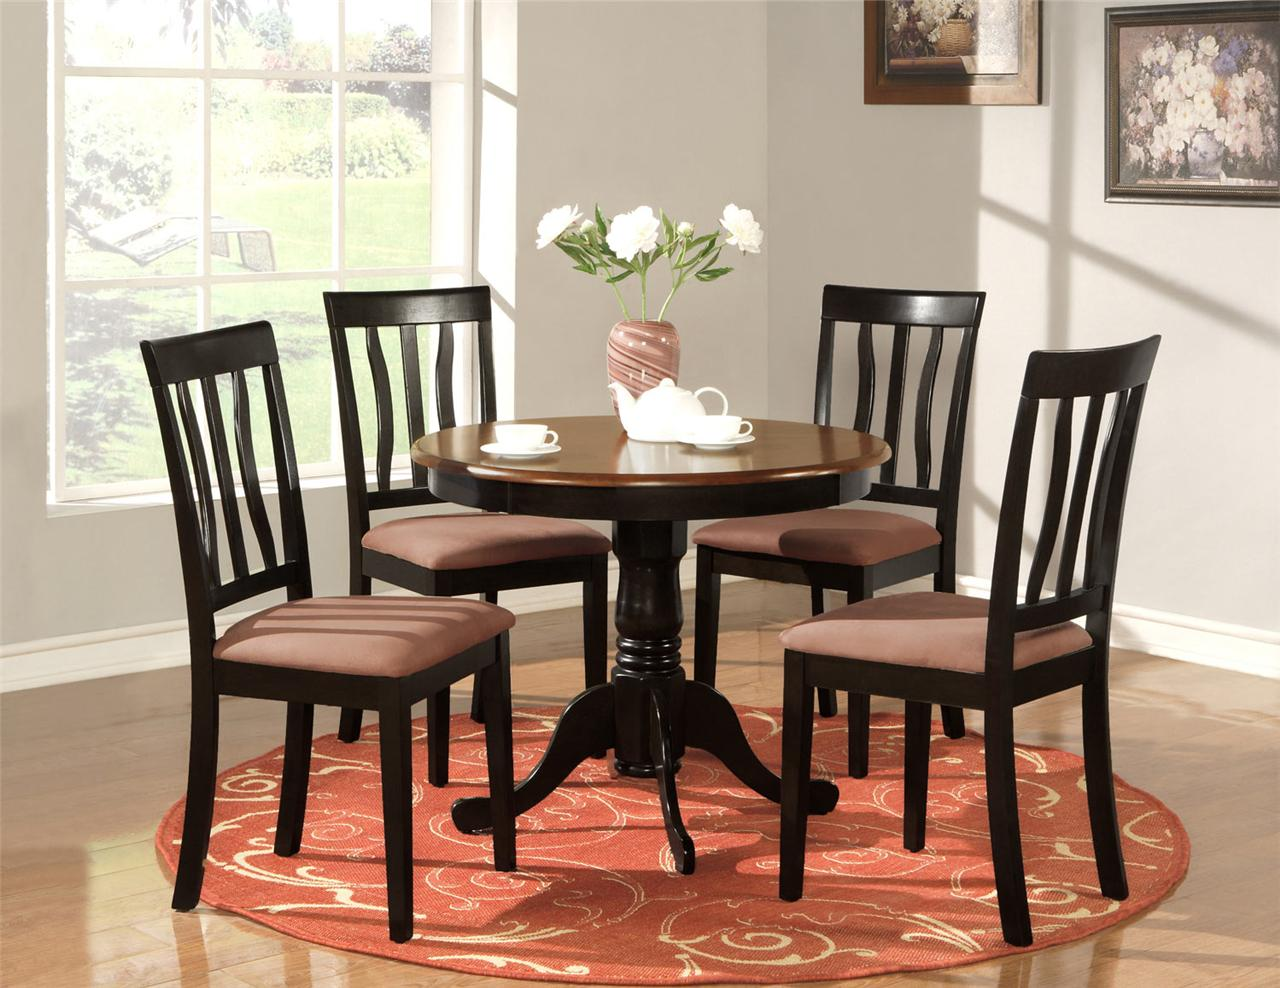 5 pc round table dinette kitchen table 4 chairs oak ebay for Kitchen set table and chairs